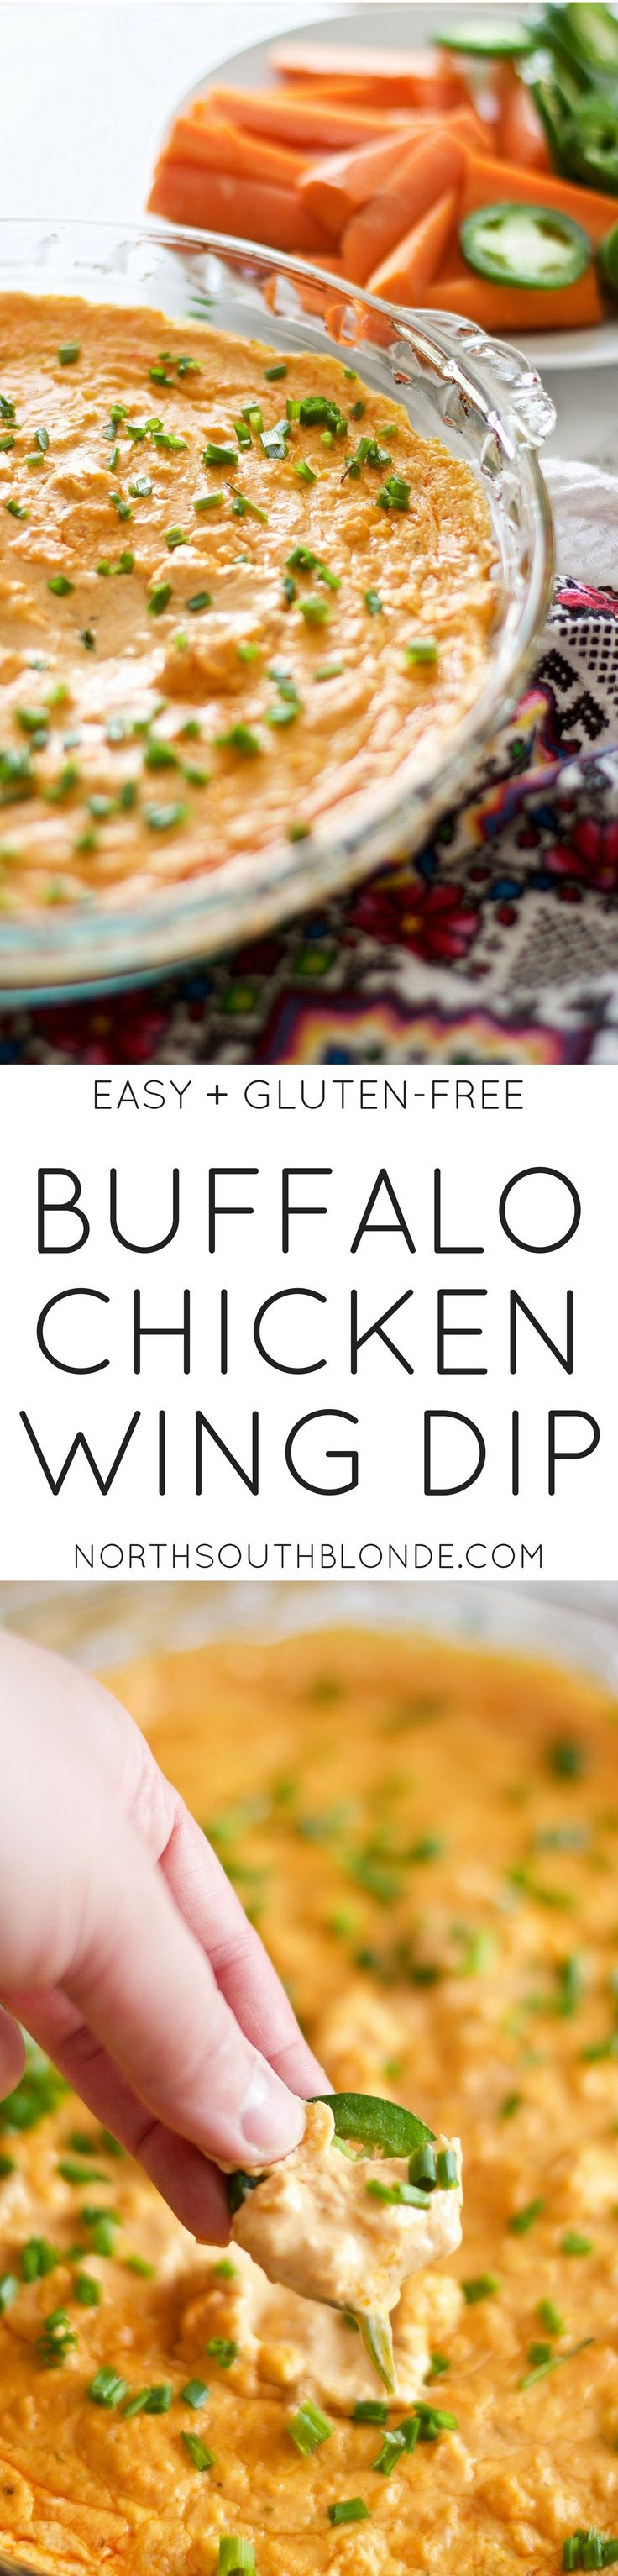 Cheesy Buffalo Chicken Wing Dip - entertain with this delicious, quick, and easy to make appetizer, guaranteed to make people lick the pan clean. It's warm, creamy, and incredibly cheesy! Great for game night, parties, get togethers, and the weekend! Made with Frank's REDHOT buffalo wing dip, you'll love this easy gluten-free snack! Super Bowl | Camping Recipe | Delicious | Quick | Cheese Dip | Click thru to get the recipe.